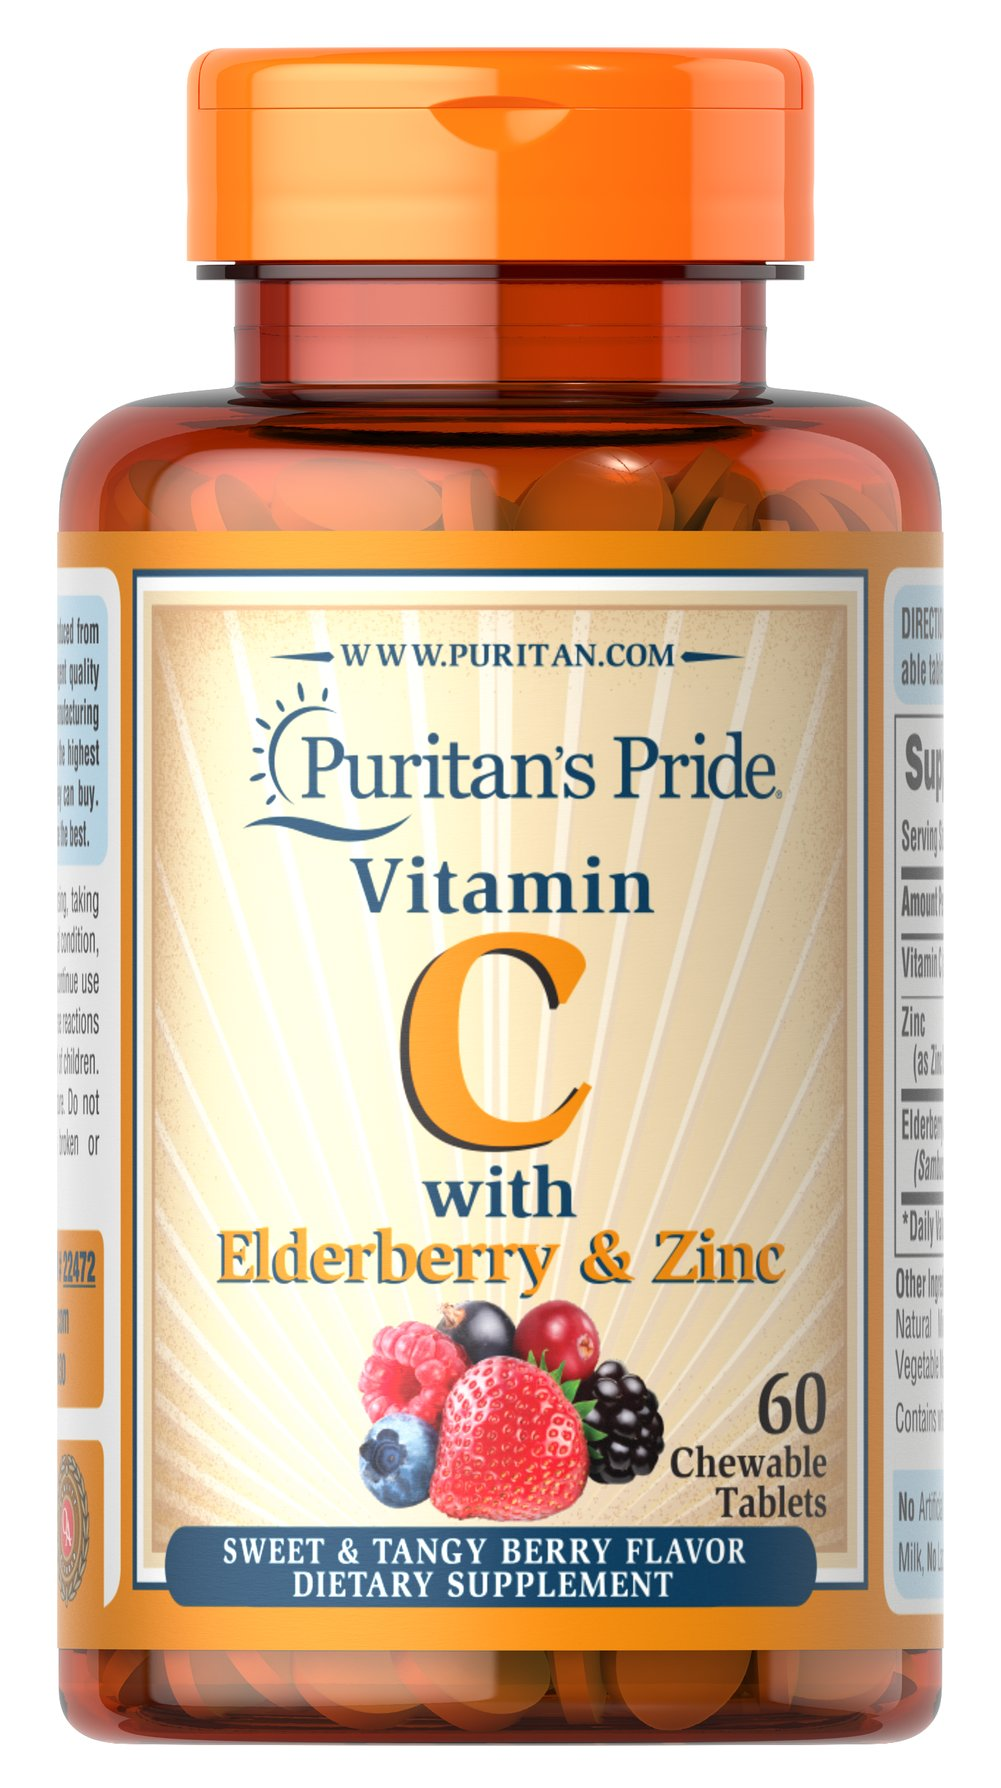 Vitamin C with Elderberry & Zinc Thumbnail Alternate Bottle View